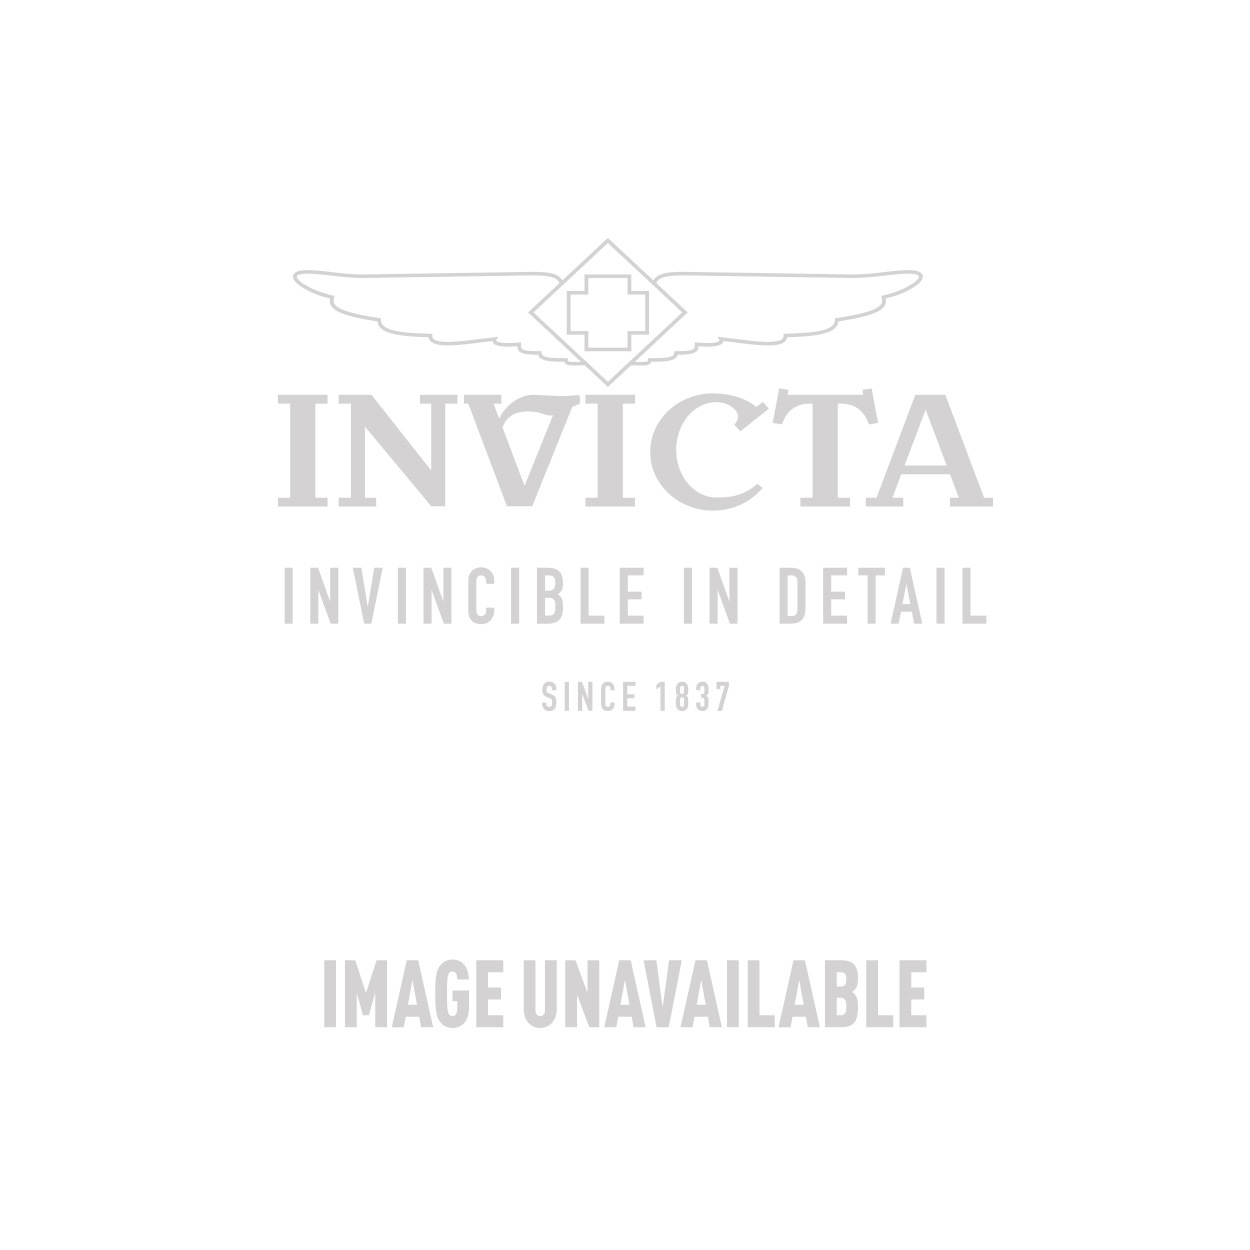 Invicta Pro Diver Swiss Movement Quartz Watch - Stainless Steel case Stainless Steel band - Model 0070